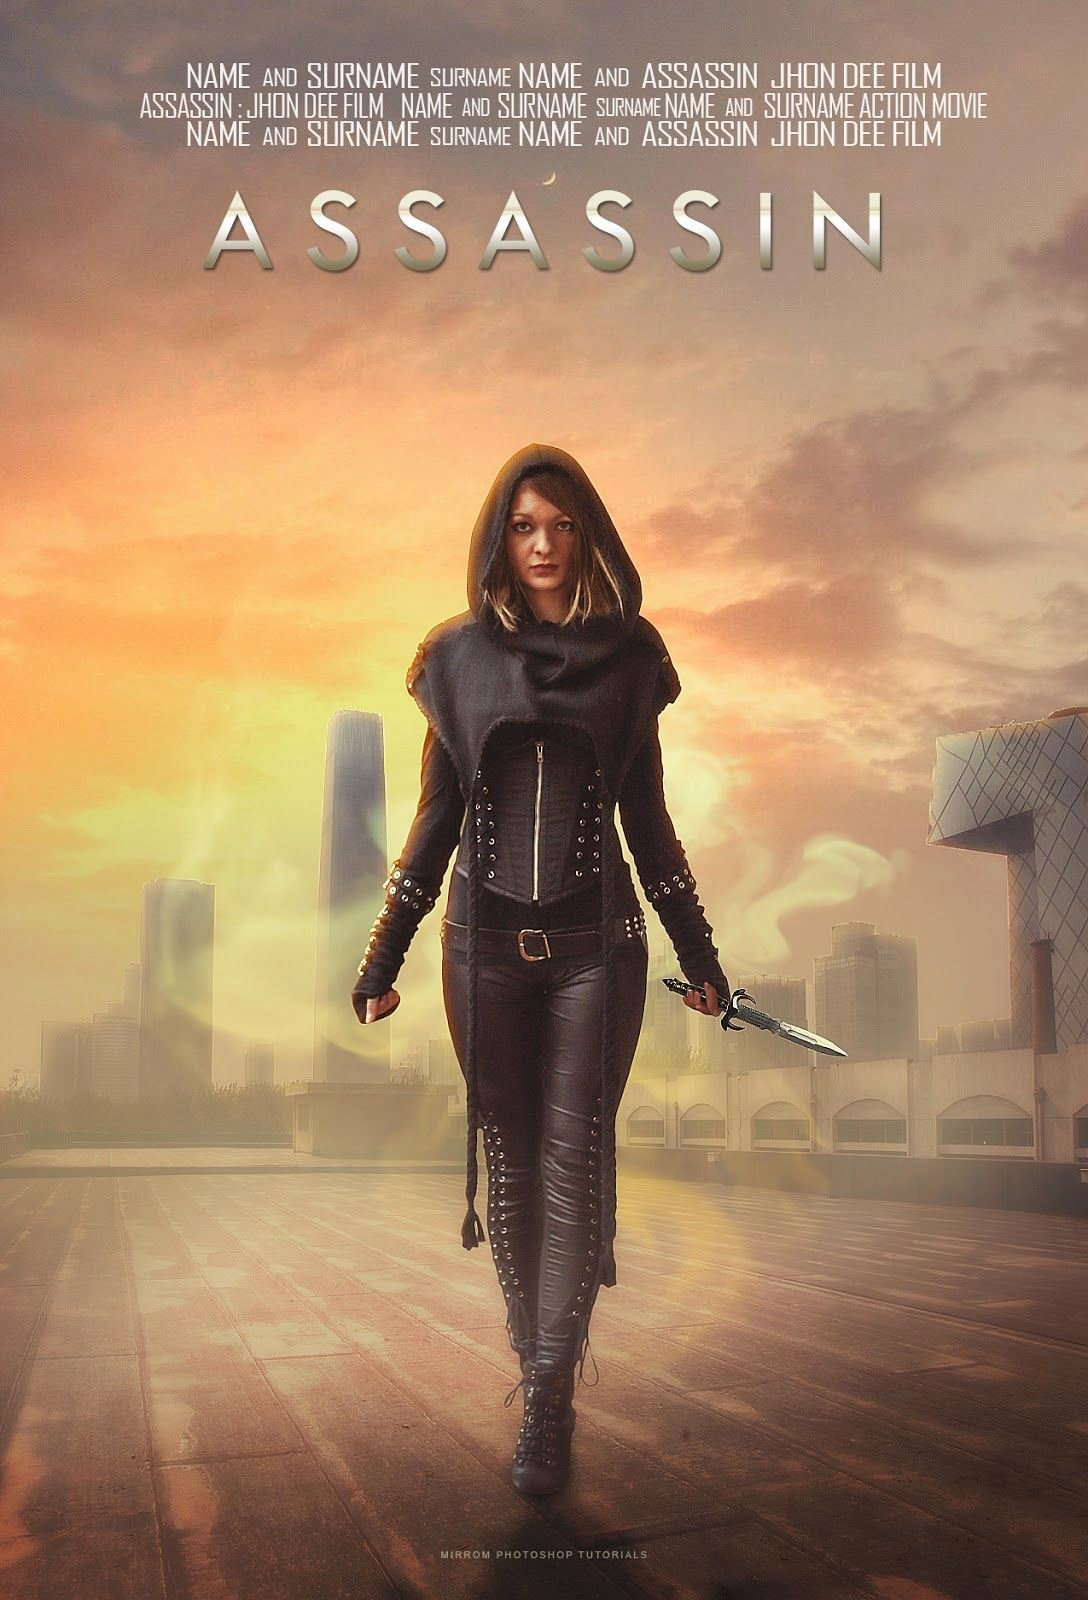 Movie Poster Template Photoshop Lovely Create A assassin Movie Poster Manipulation In Shop